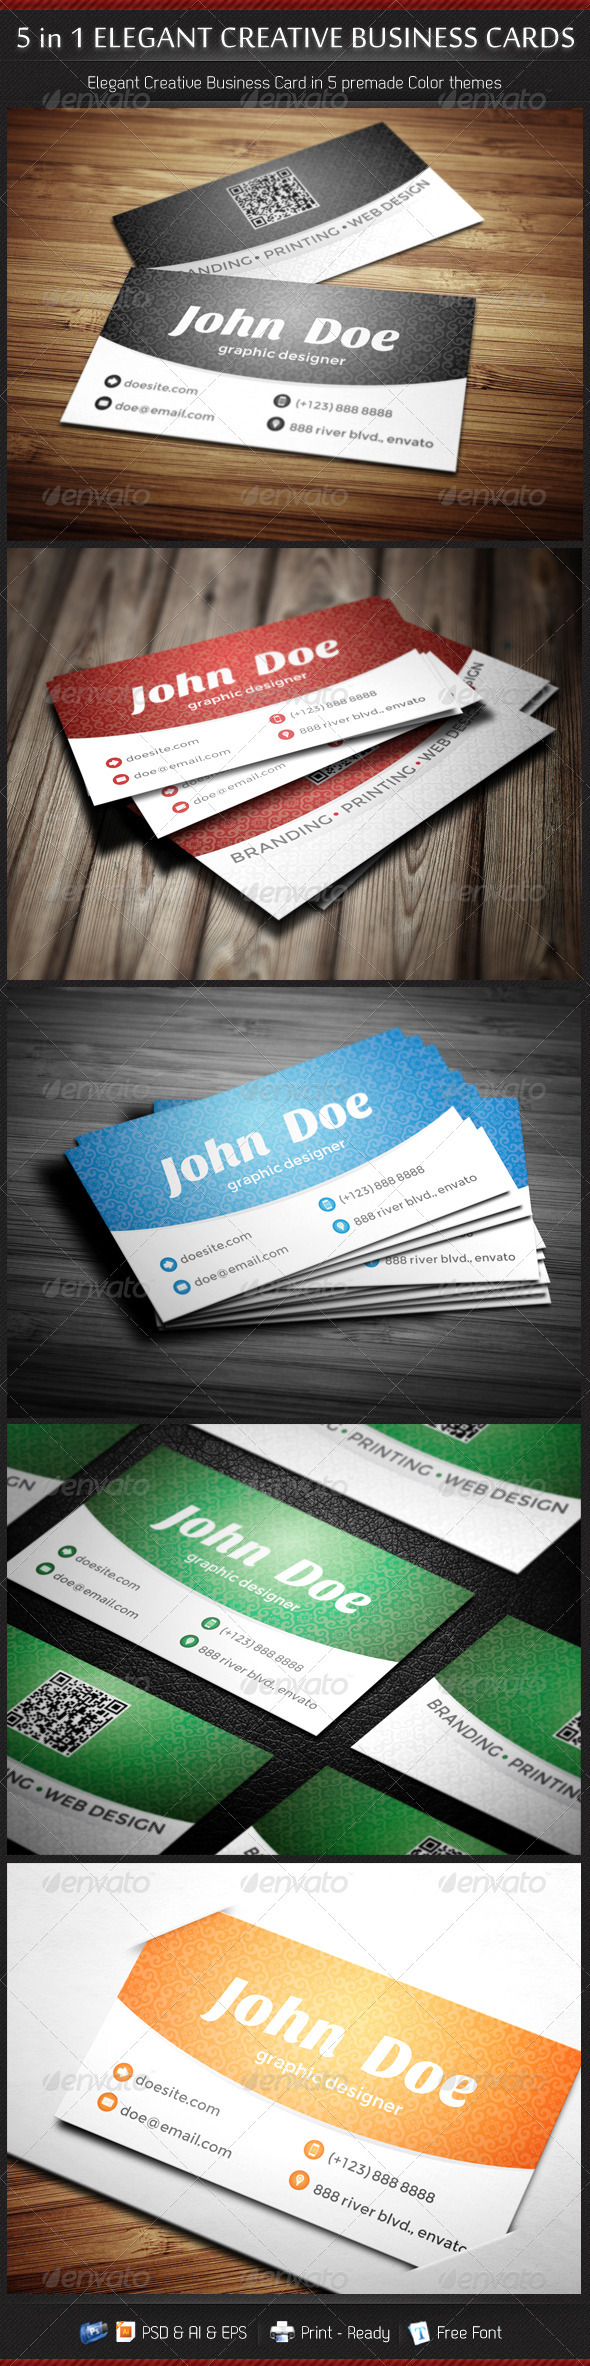 GraphicRiver 5 in 1 Creative Elegant Business Card Template 3336270